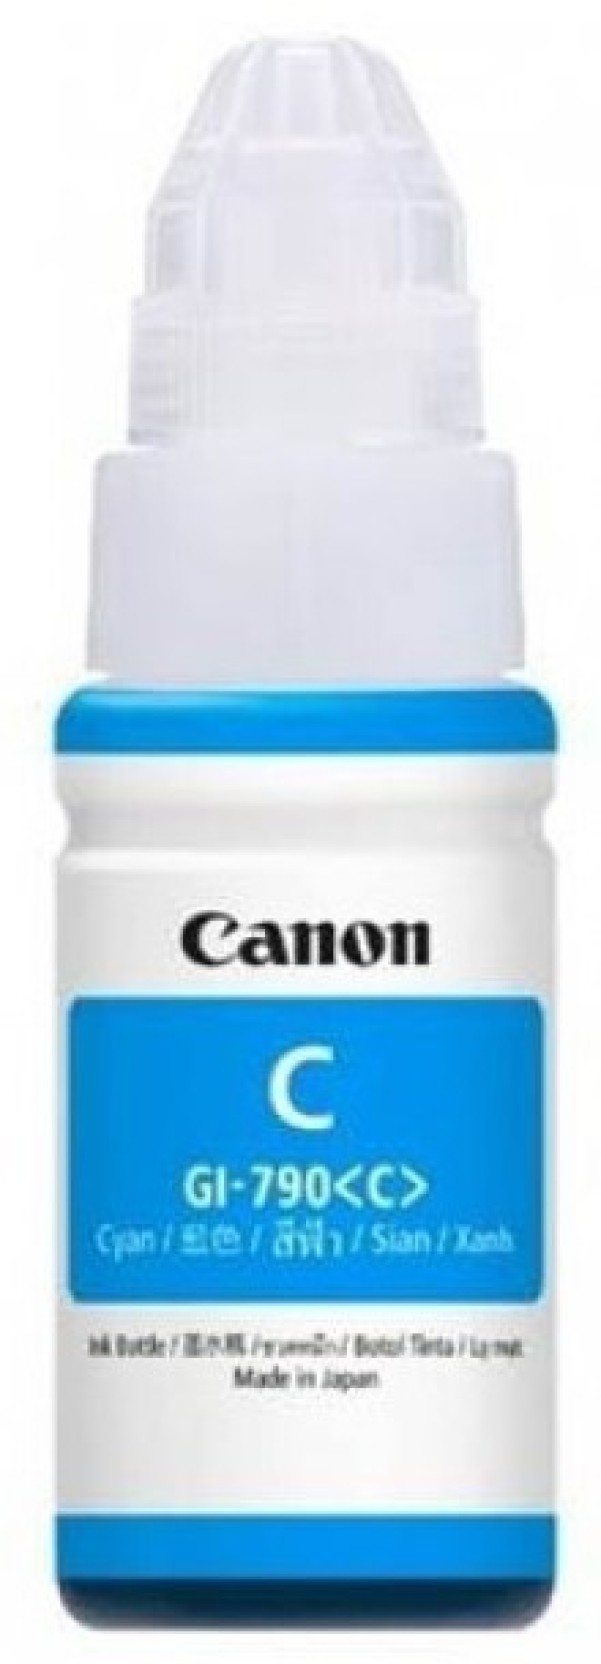 Canon Gi 790 Pixma For G1000 G2000 G3000 Single Color Ink Print Head Original Cartridge Add To Cart